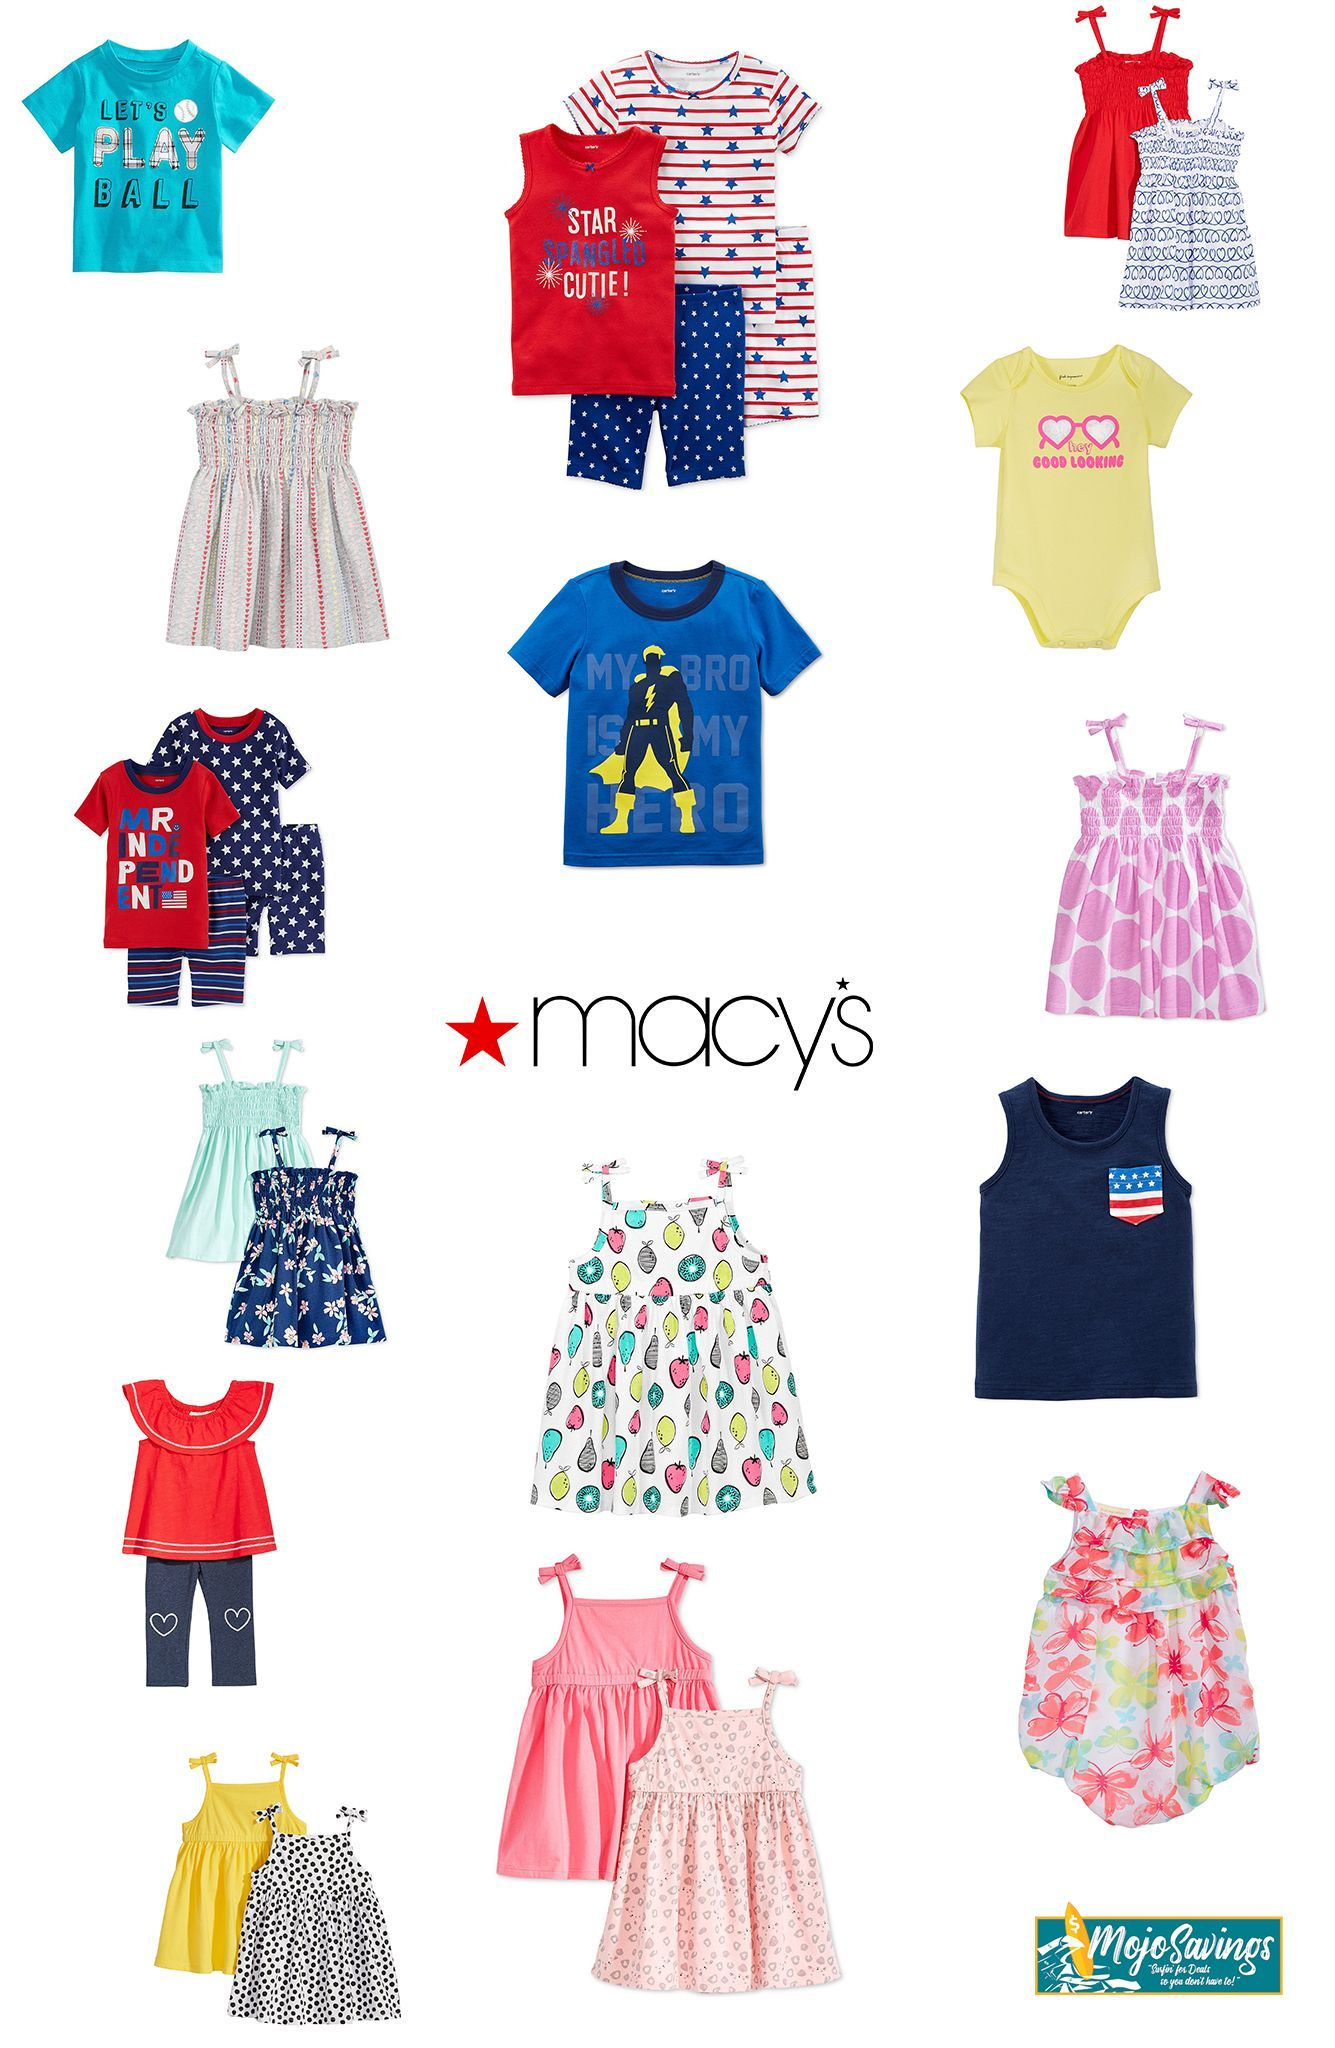 fcfc0a503b684 HOT – Macy's Clearance on Sundresses and PJ's only $2.56! | Coupons ...